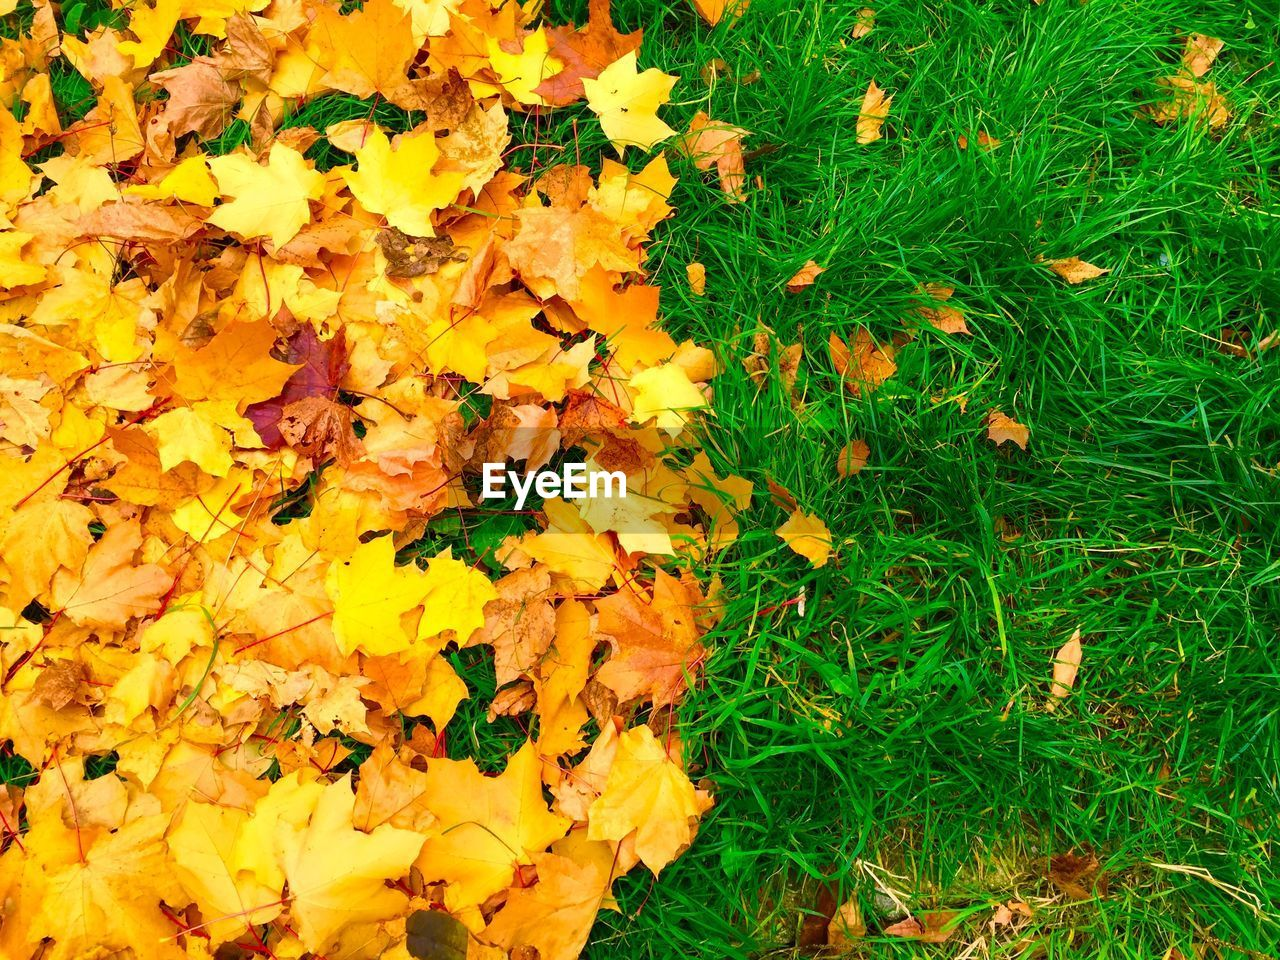 autumn, leaf, yellow, change, nature, leaves, fragility, flower, beauty in nature, abundance, growth, field, grass, no people, maple leaf, backgrounds, outdoors, day, tranquility, maple, close-up, freshness